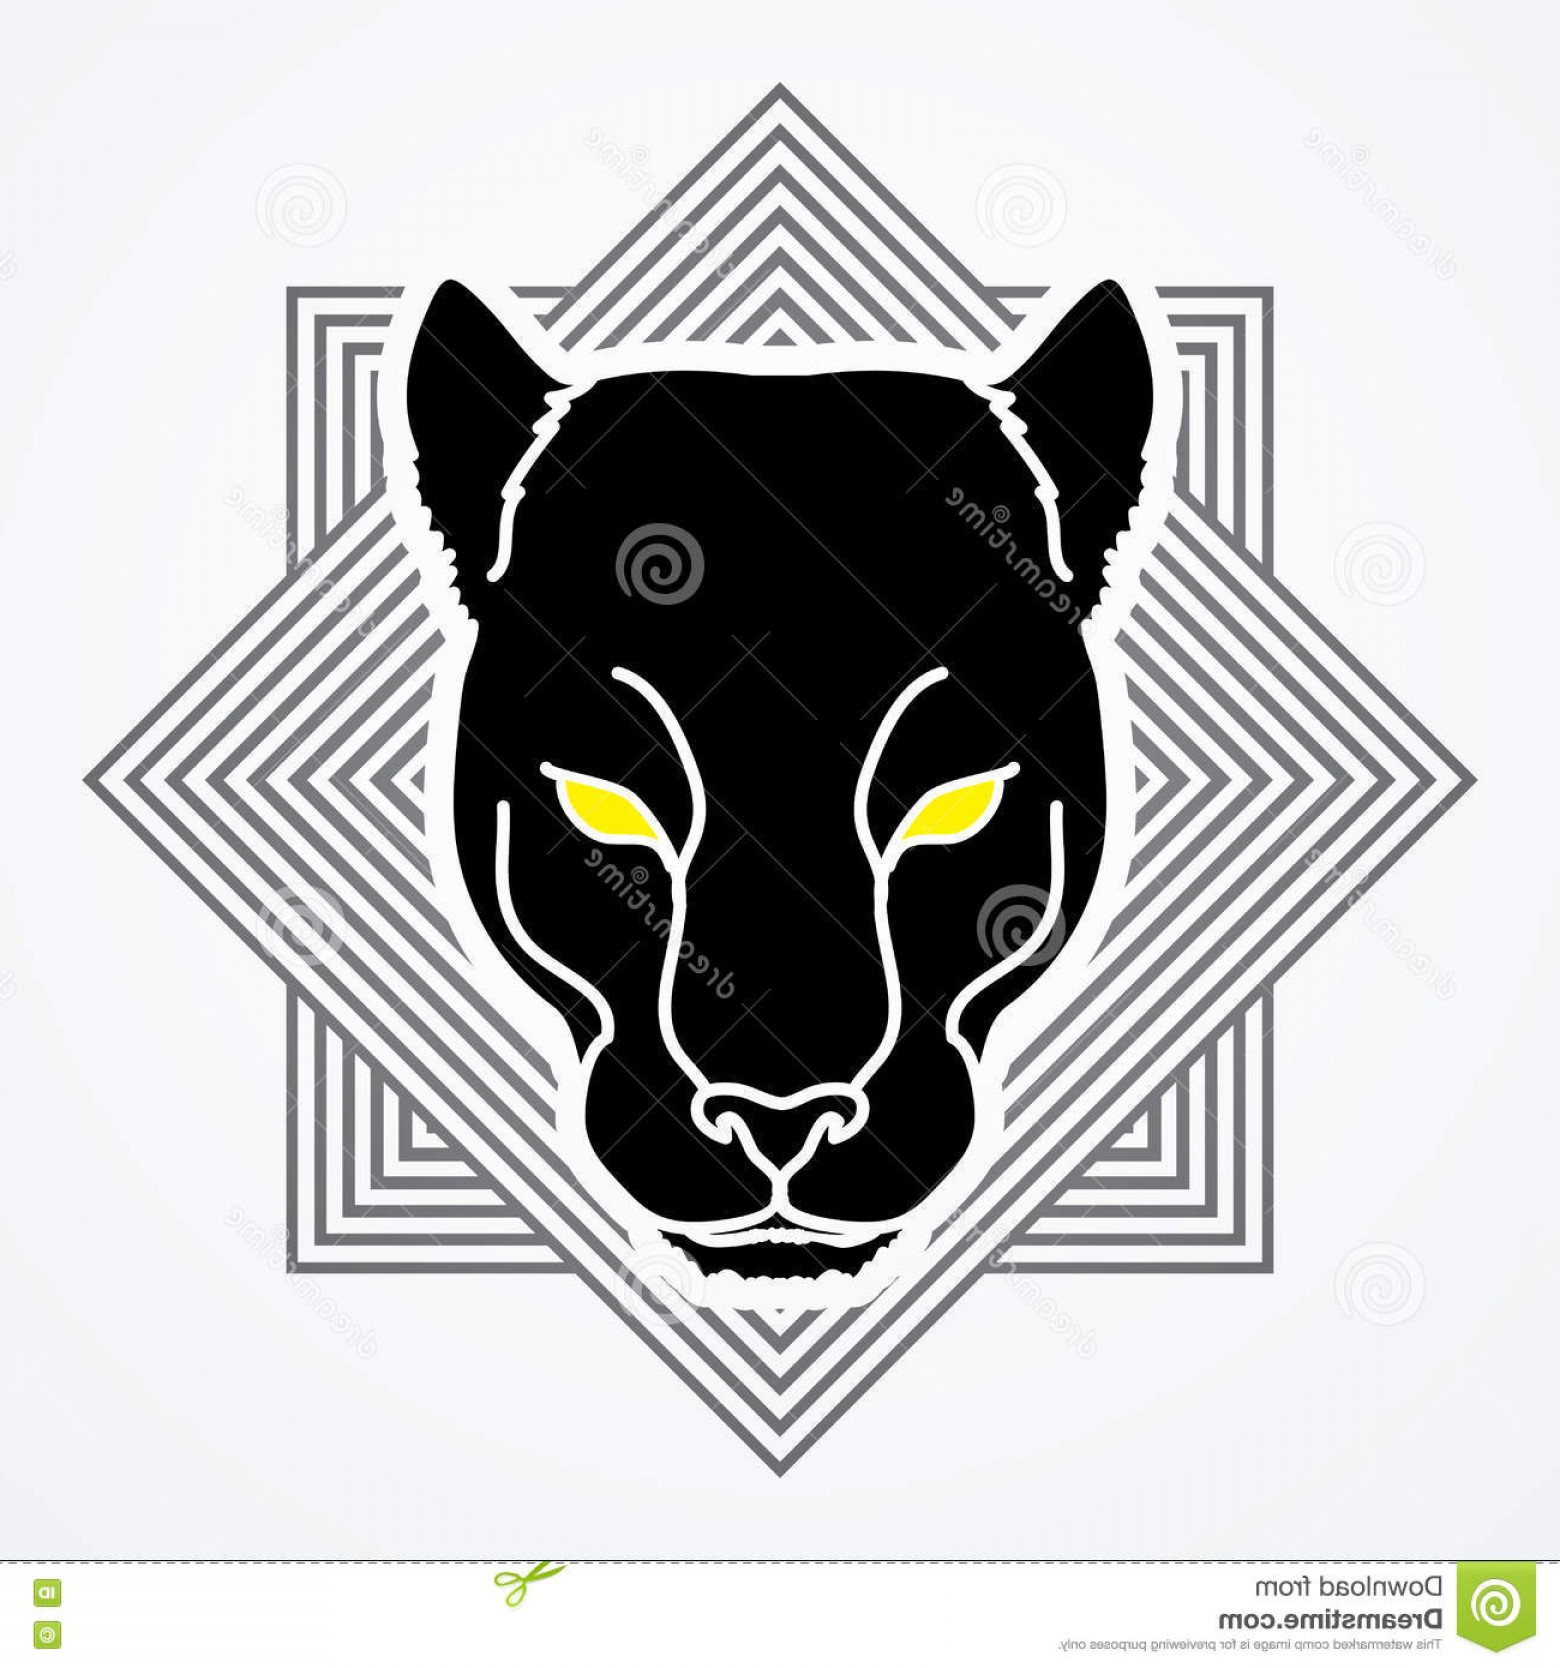 Vector Panther Football: Stock Illustration Black Panther Head Designed Line Square Background Graphic Vector Image